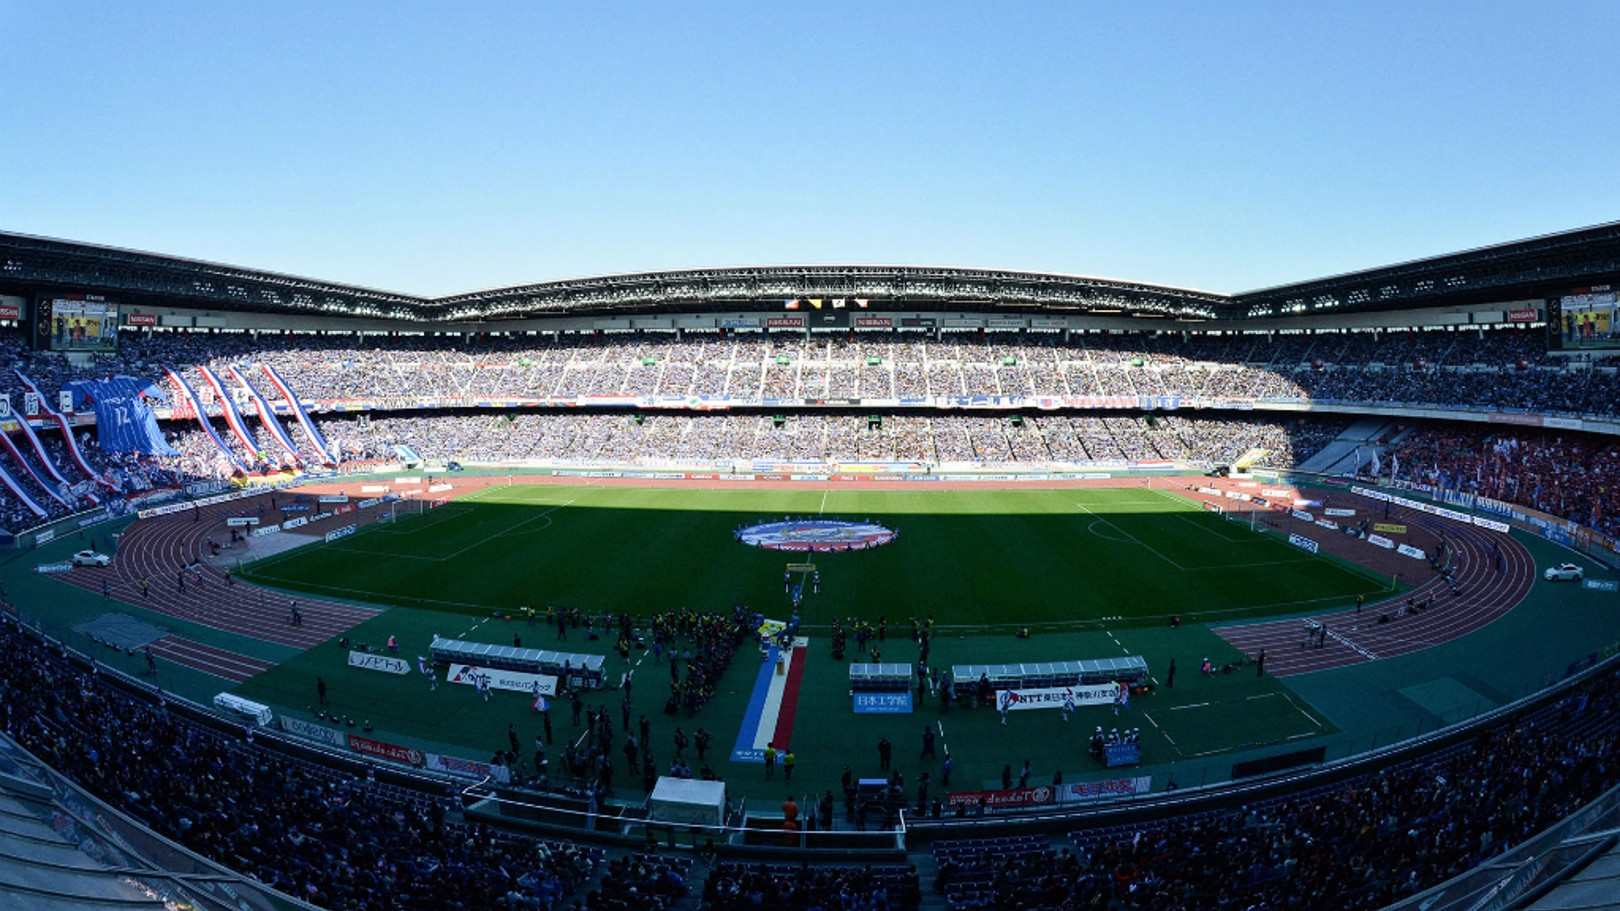 TOUR 2019: City will visit the Nissan Stadium in Yokohama, Japan during this summer's tour of Asia